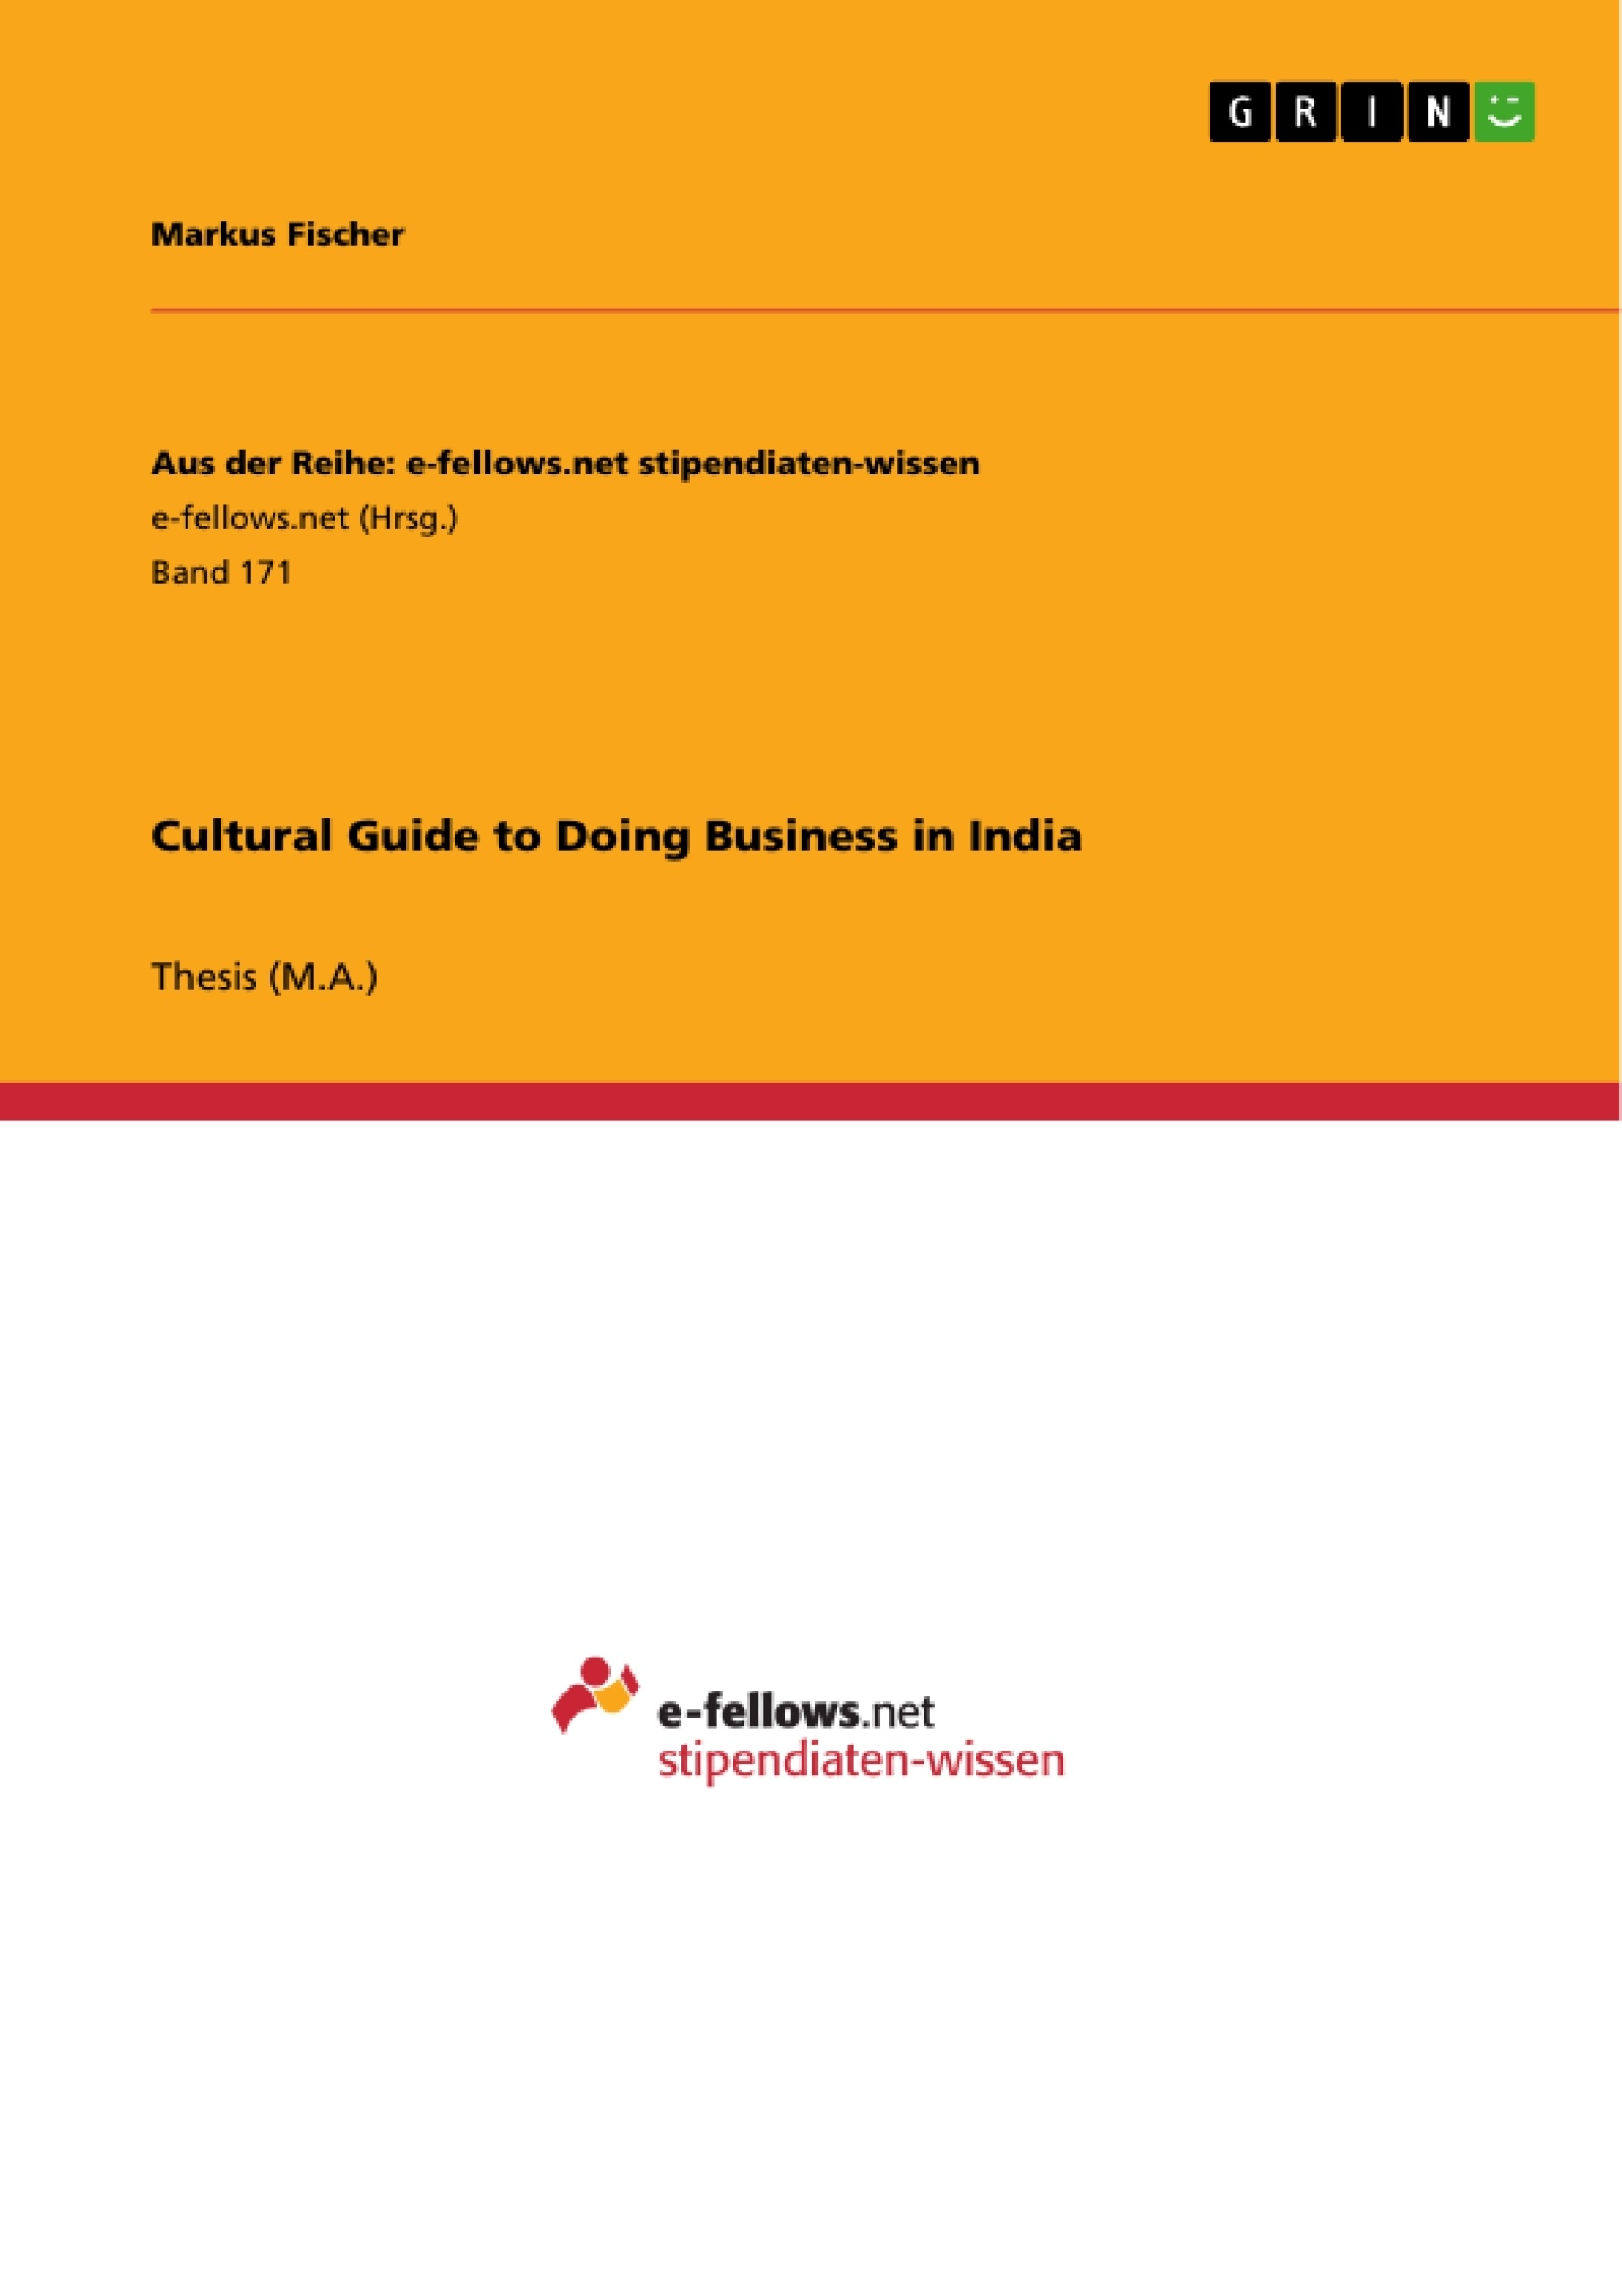 Title: Cultural Guide to Doing Business in India